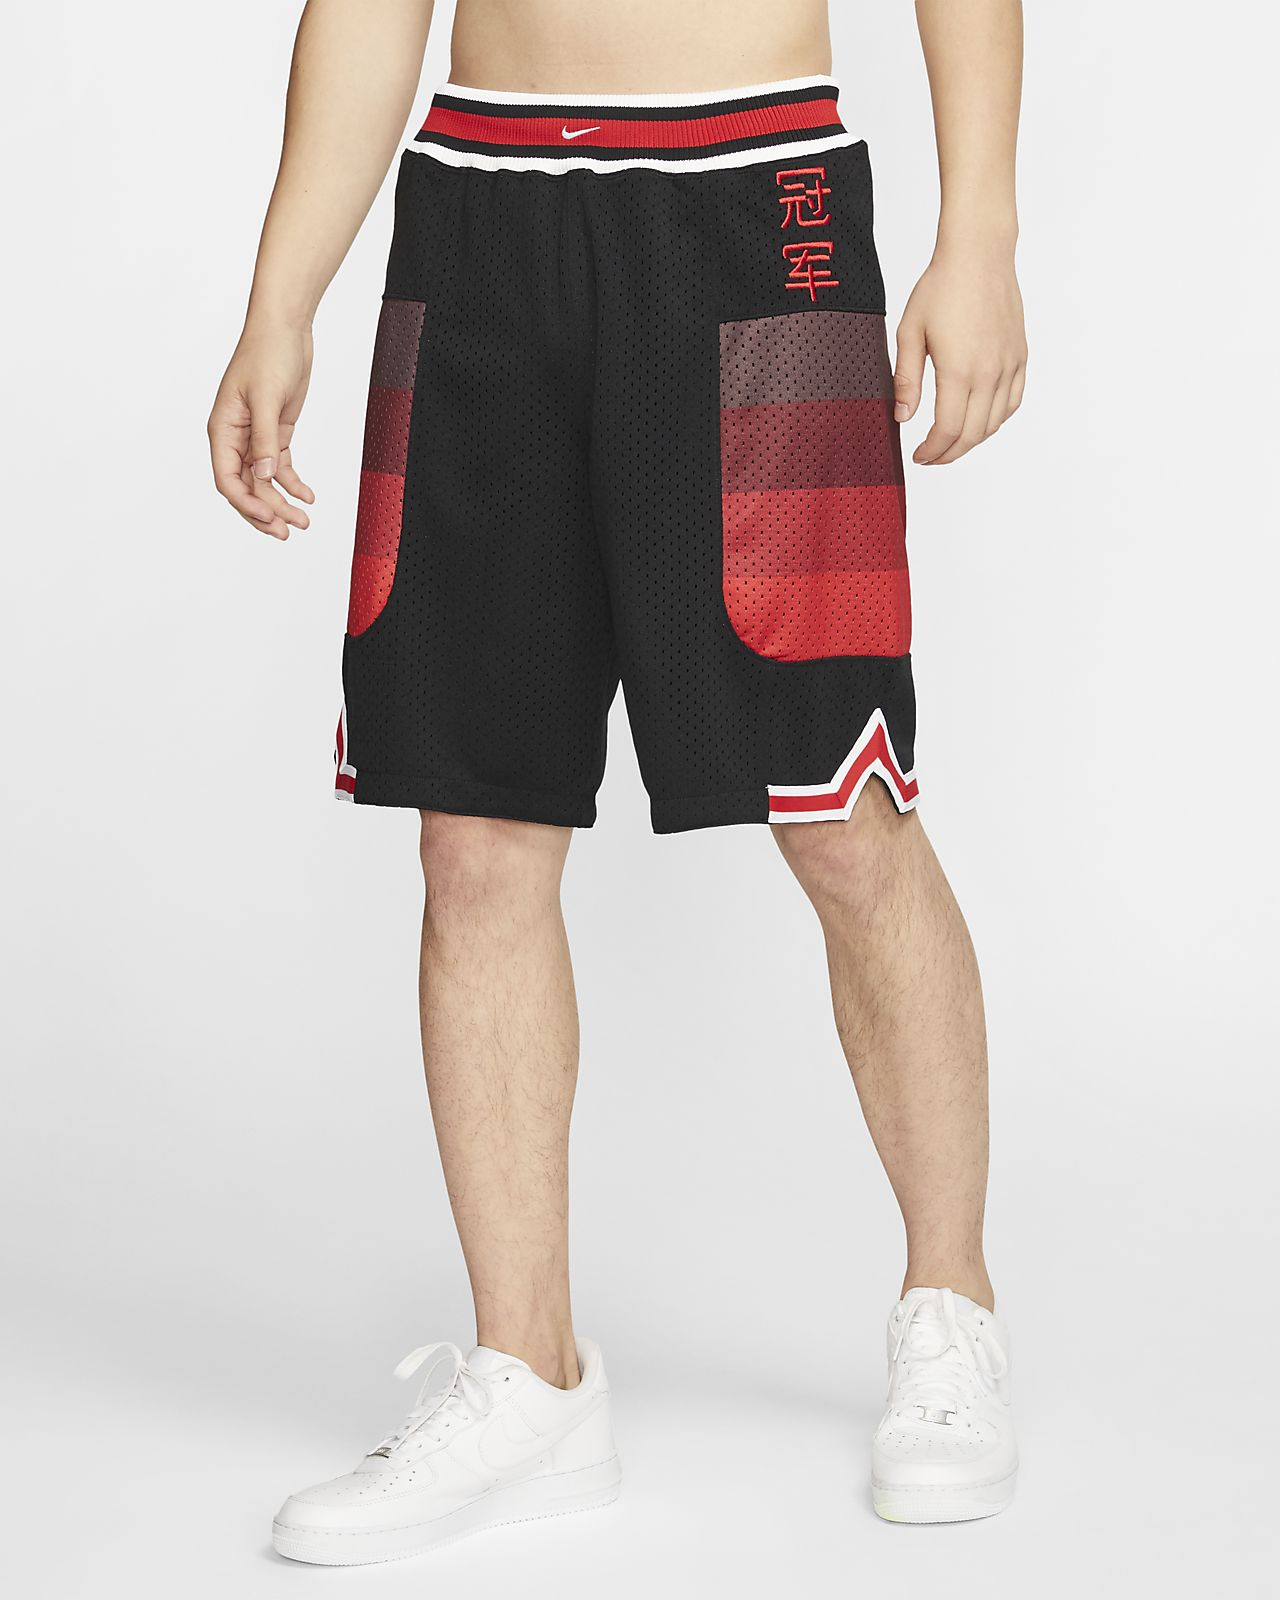 dragon ball z nike shorts